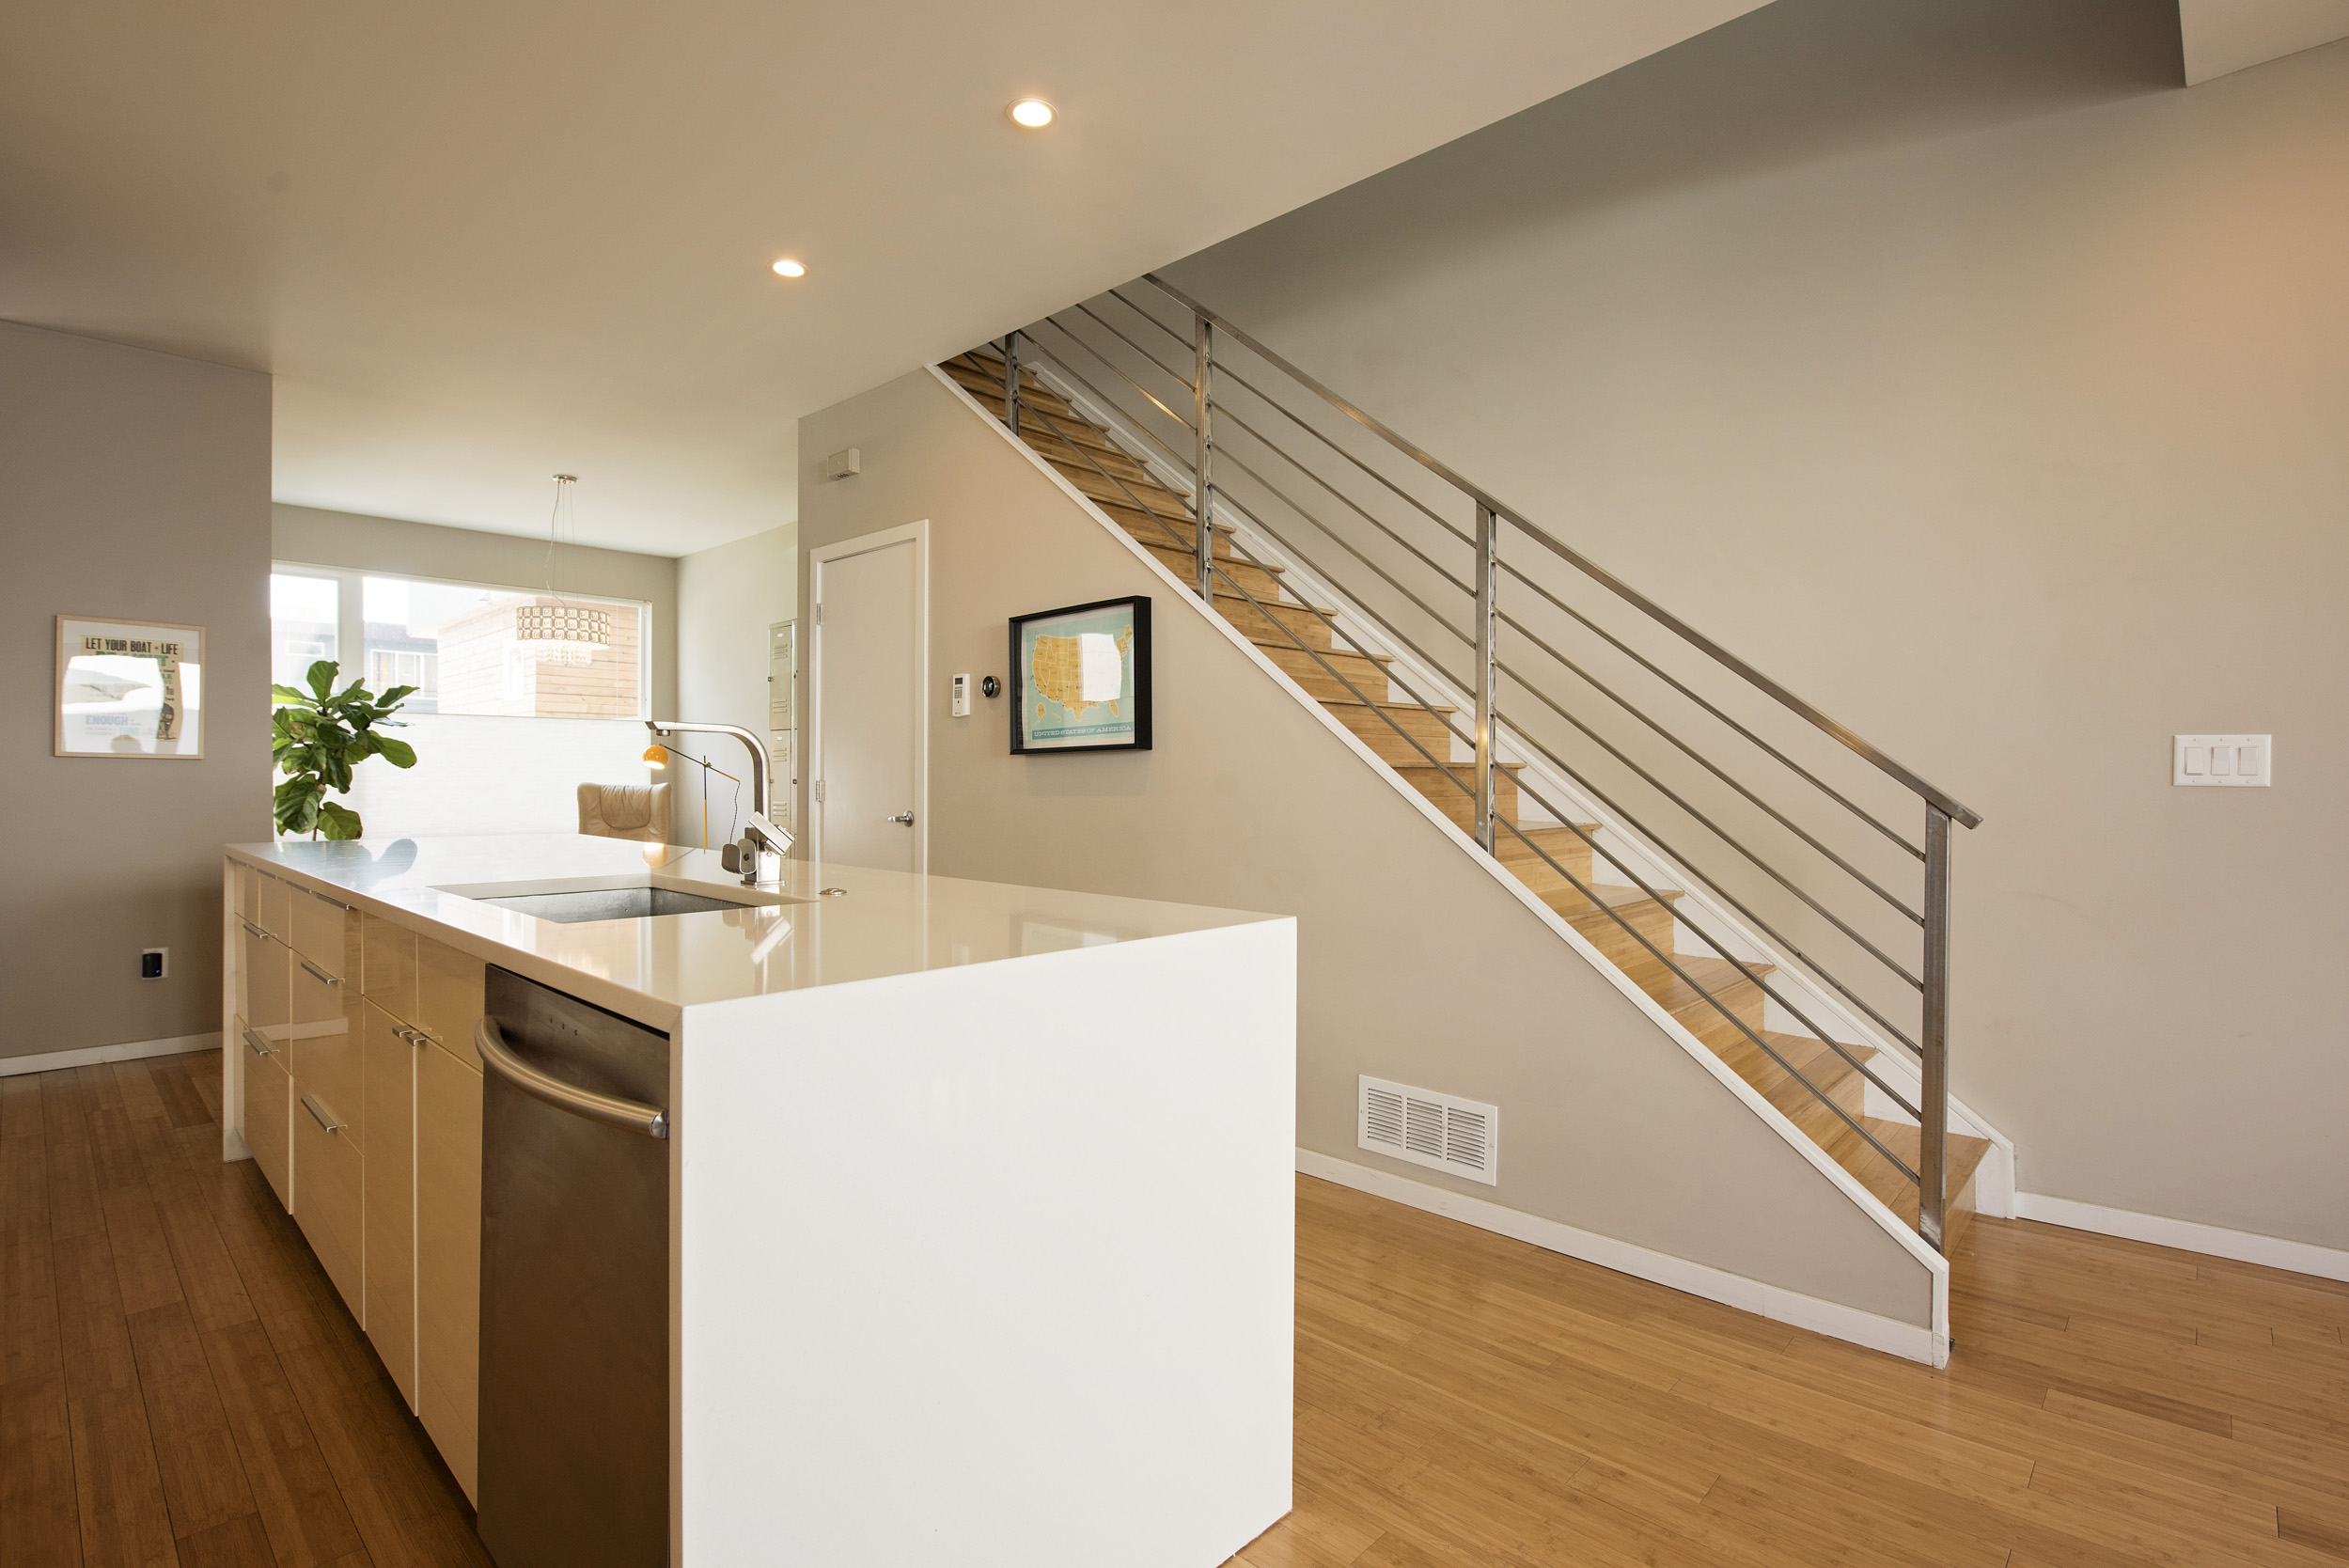 Britt_Nemeth_Photography_Real_Estate_Commercial_Architectural058.jpg